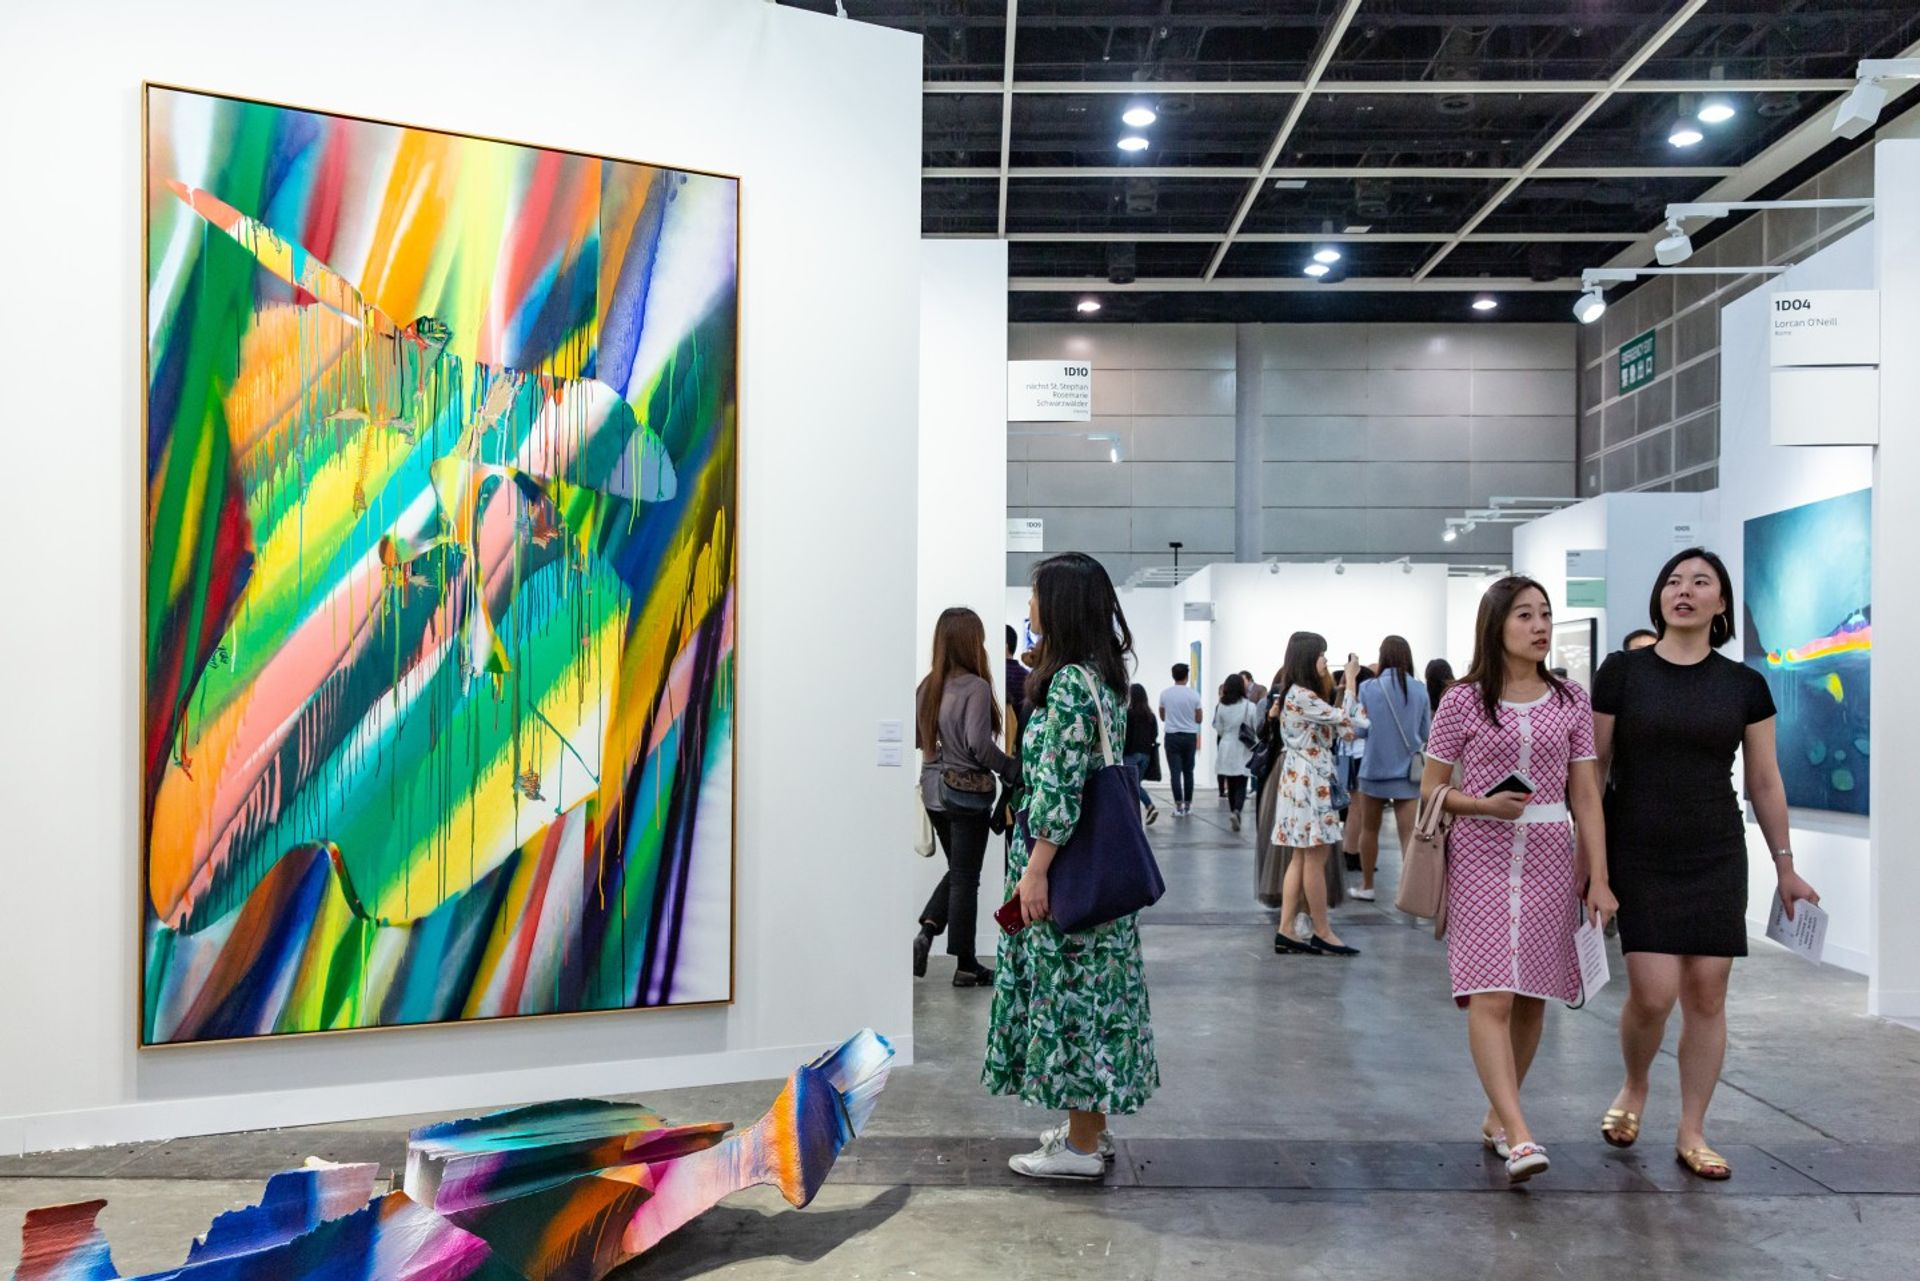 Galleries participating in Art Basel in Hong Kong this year are concerned that collectors will not show up as protests continue to grip the city © Art Basel